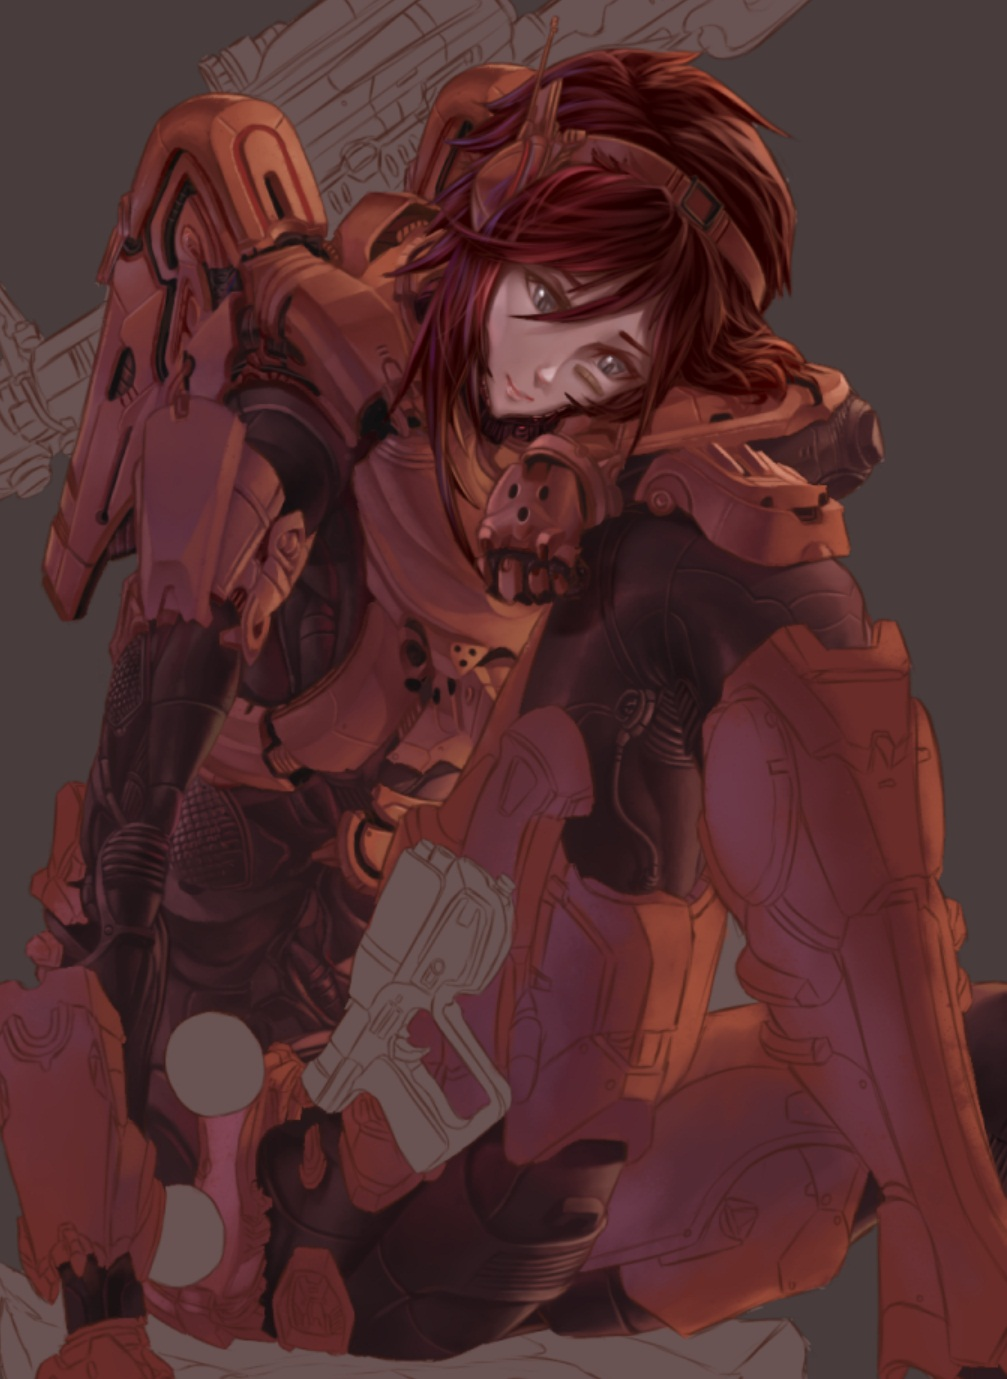 More Rwby X Halo By Dishwasher1910 Rwby Know Your Meme Fate/stay night crossover fanfiction archive with over 3,881 stories. rwby x halo by dishwasher1910 rwby